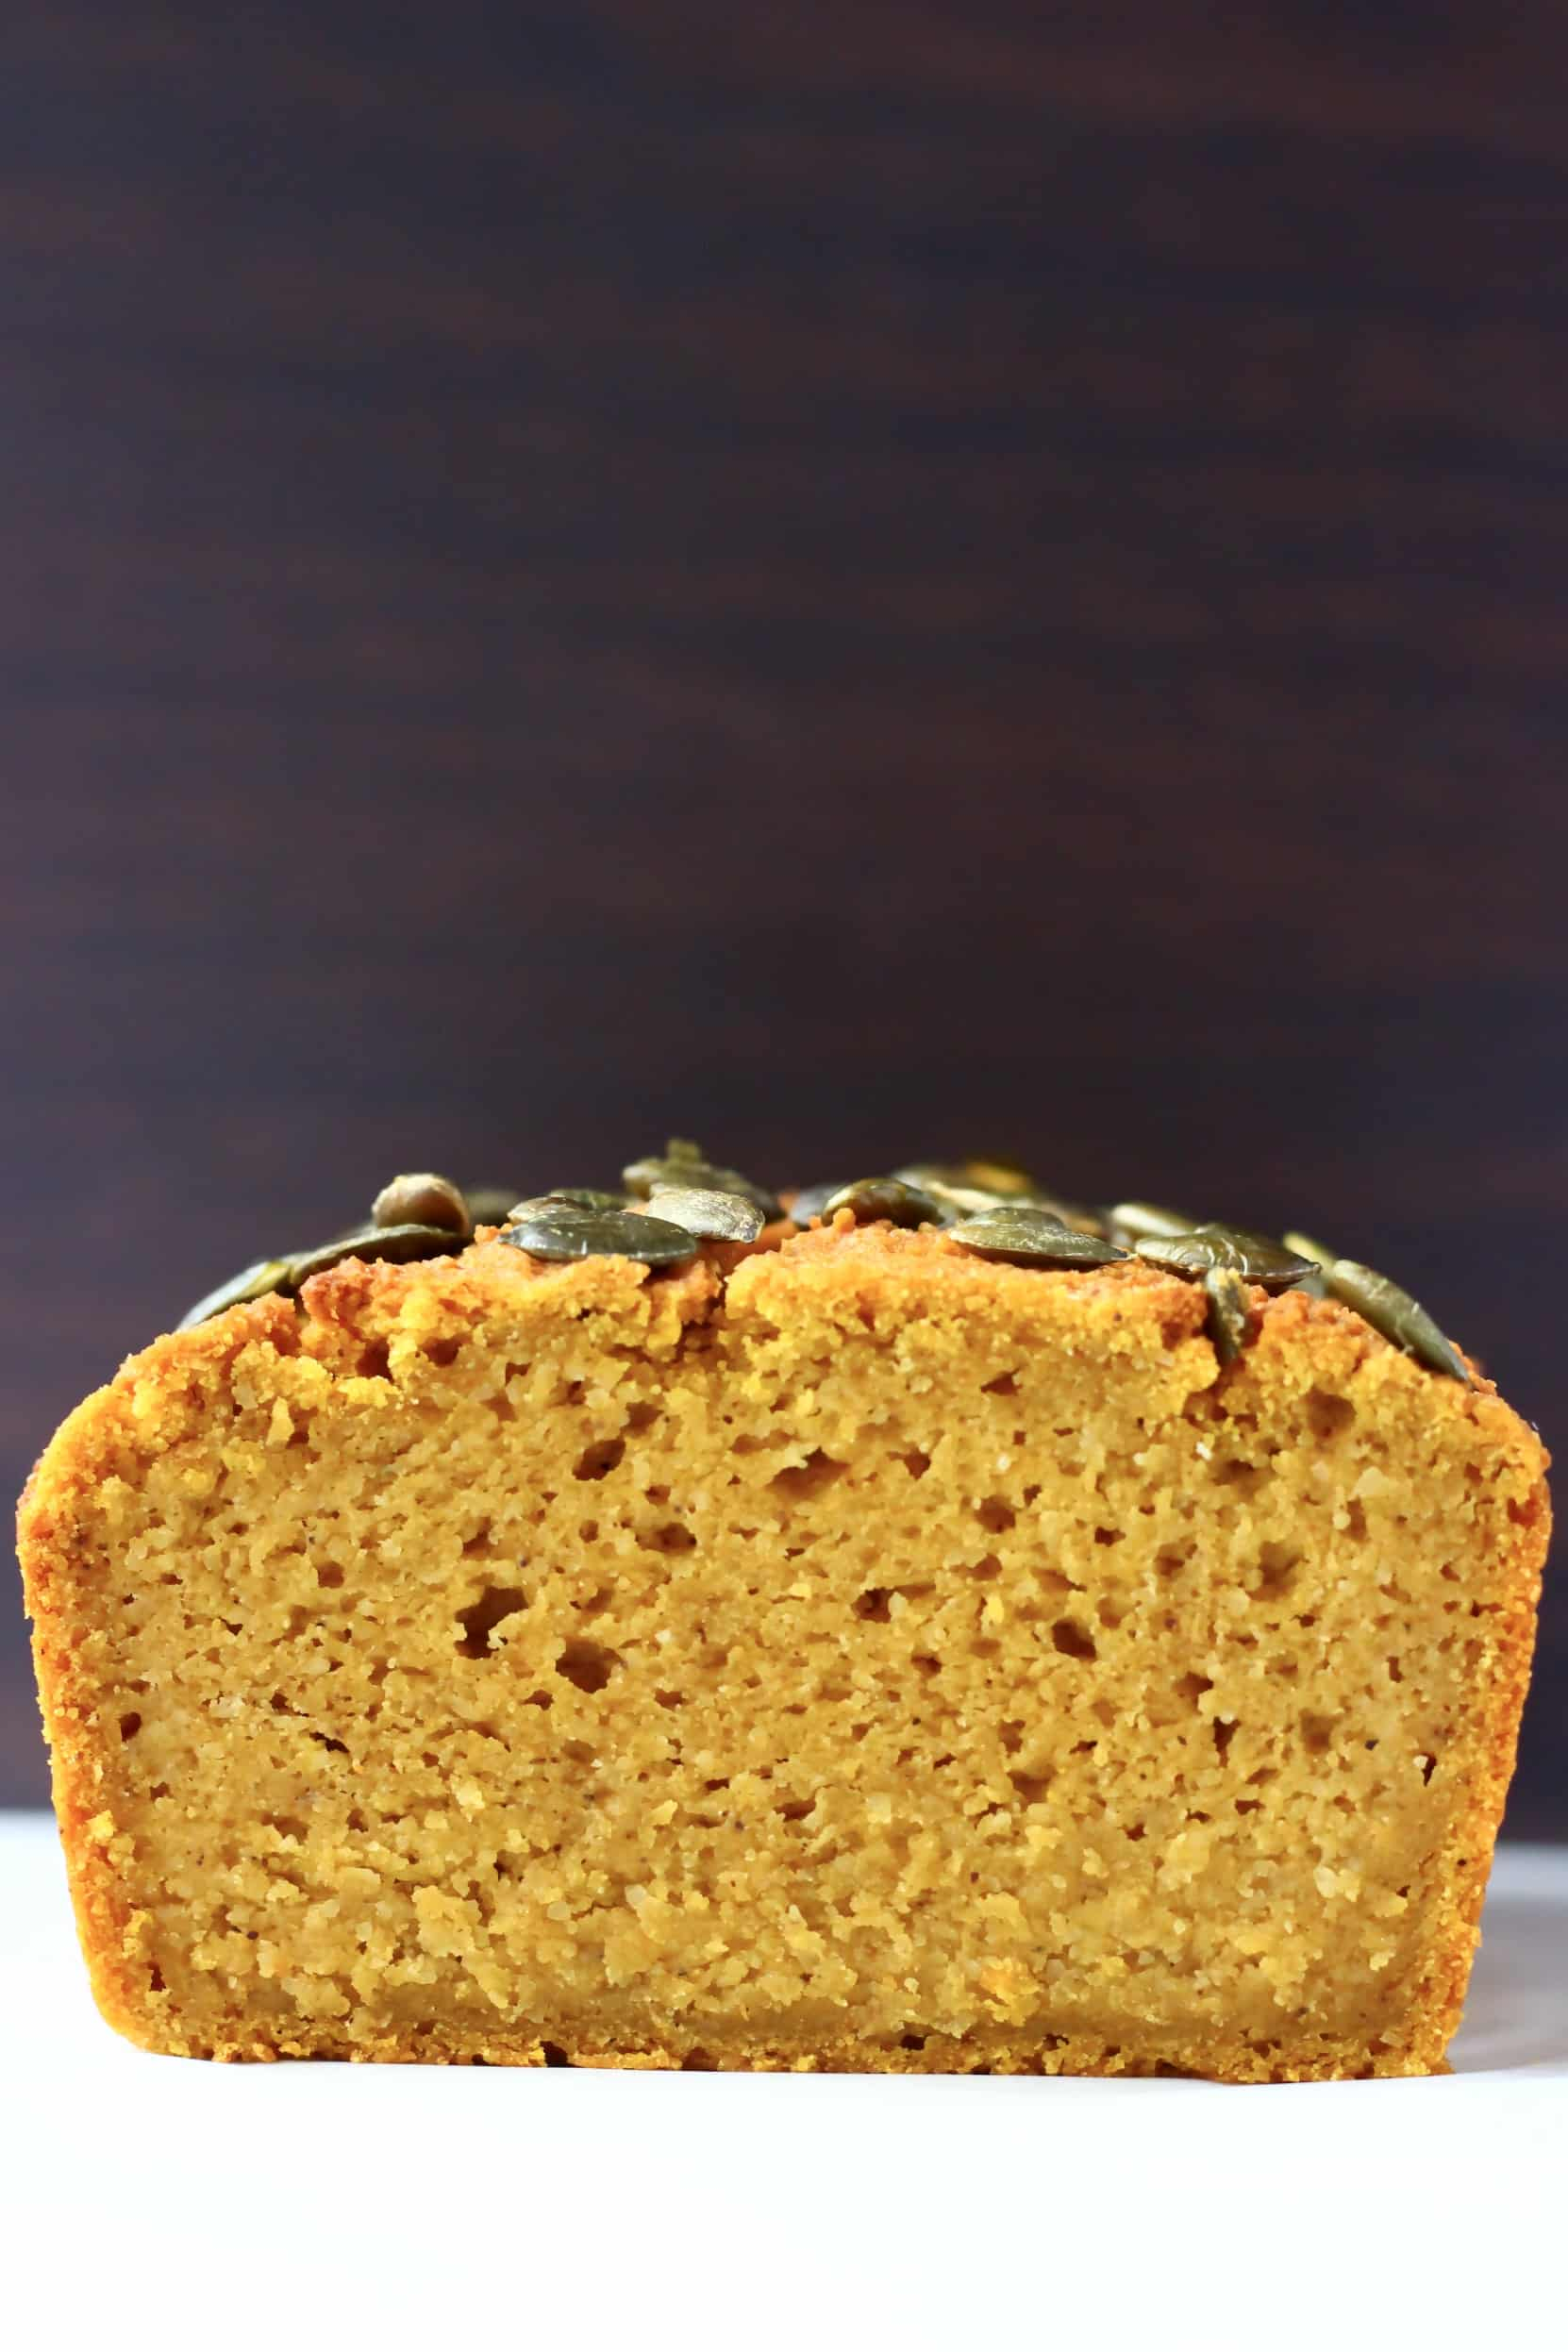 A sliced loaf of gluten-free vegan pumpkin bread